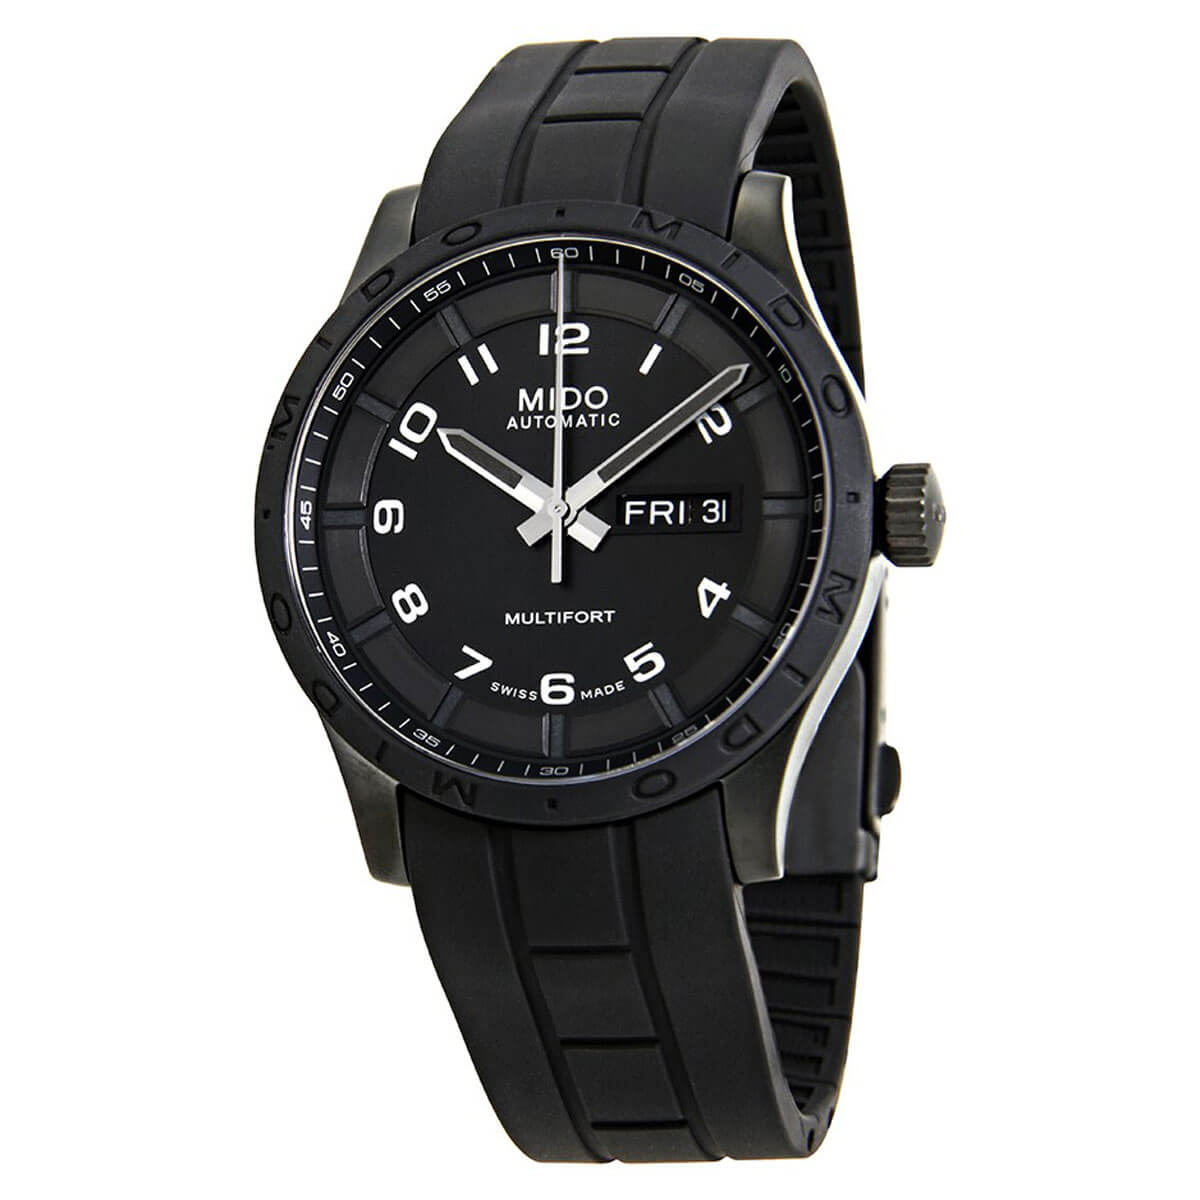 Mido Multifort Automatic Black Dial Mens Watch M018.430.37.052.80 by Mido